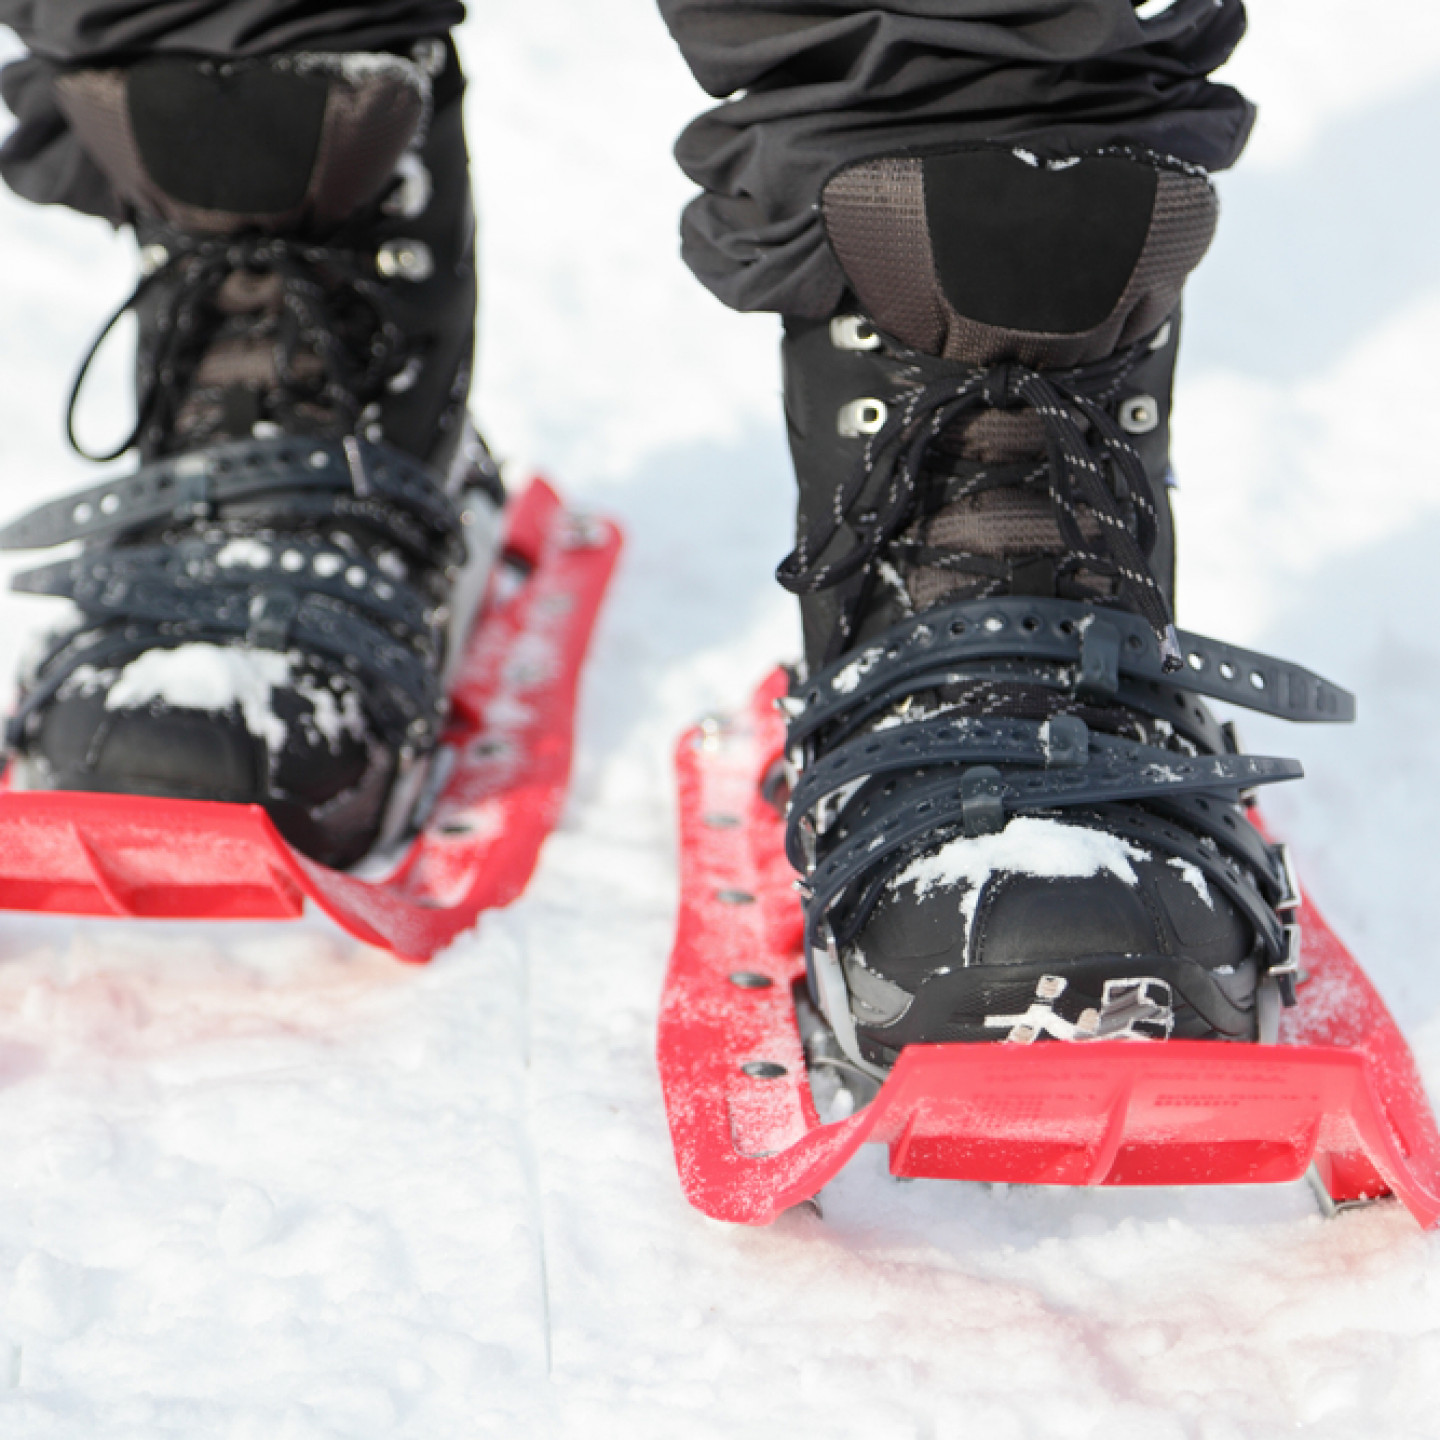 3 great reasonsto rent snowshoes